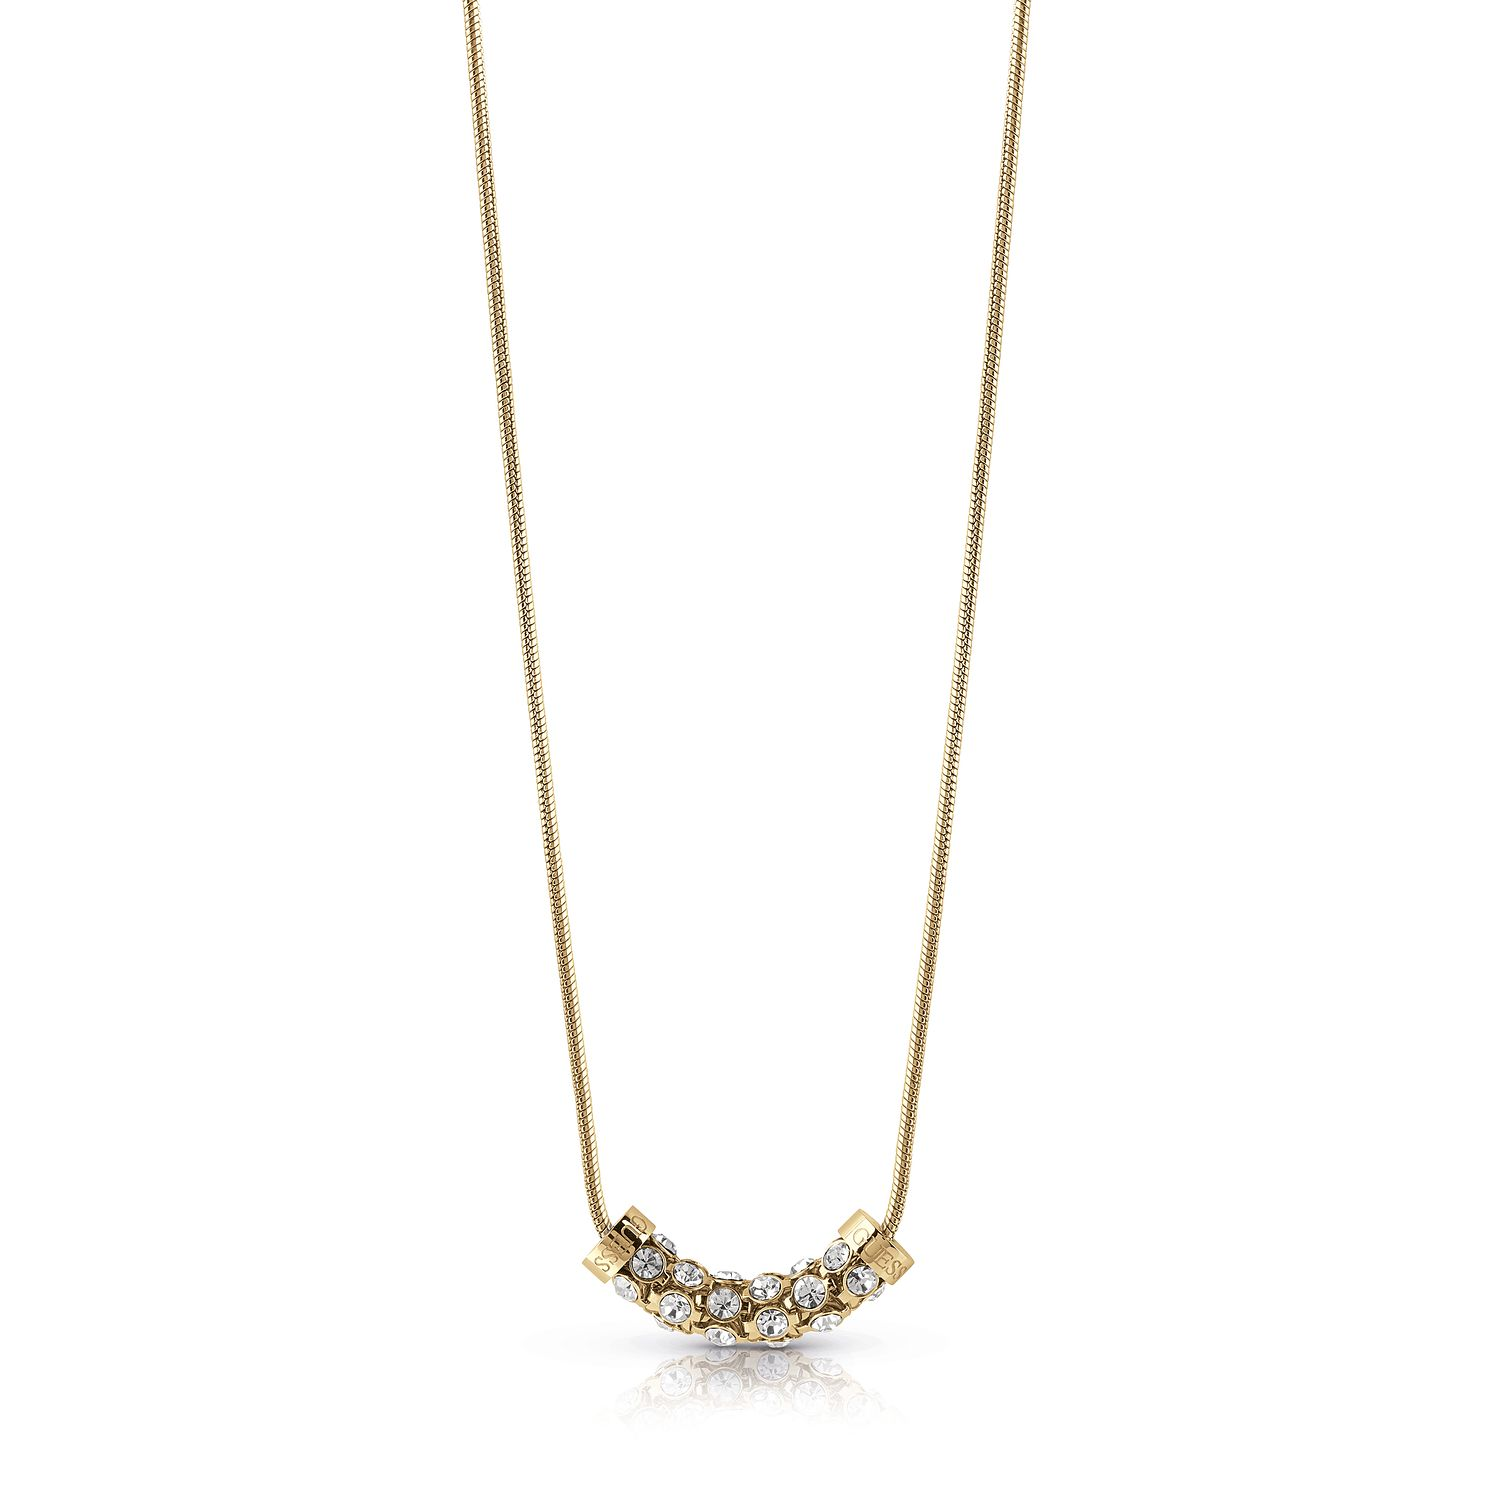 Guess Gold Plated Horizontal Crystal 16-18 inches Necklace - Product number 1083090